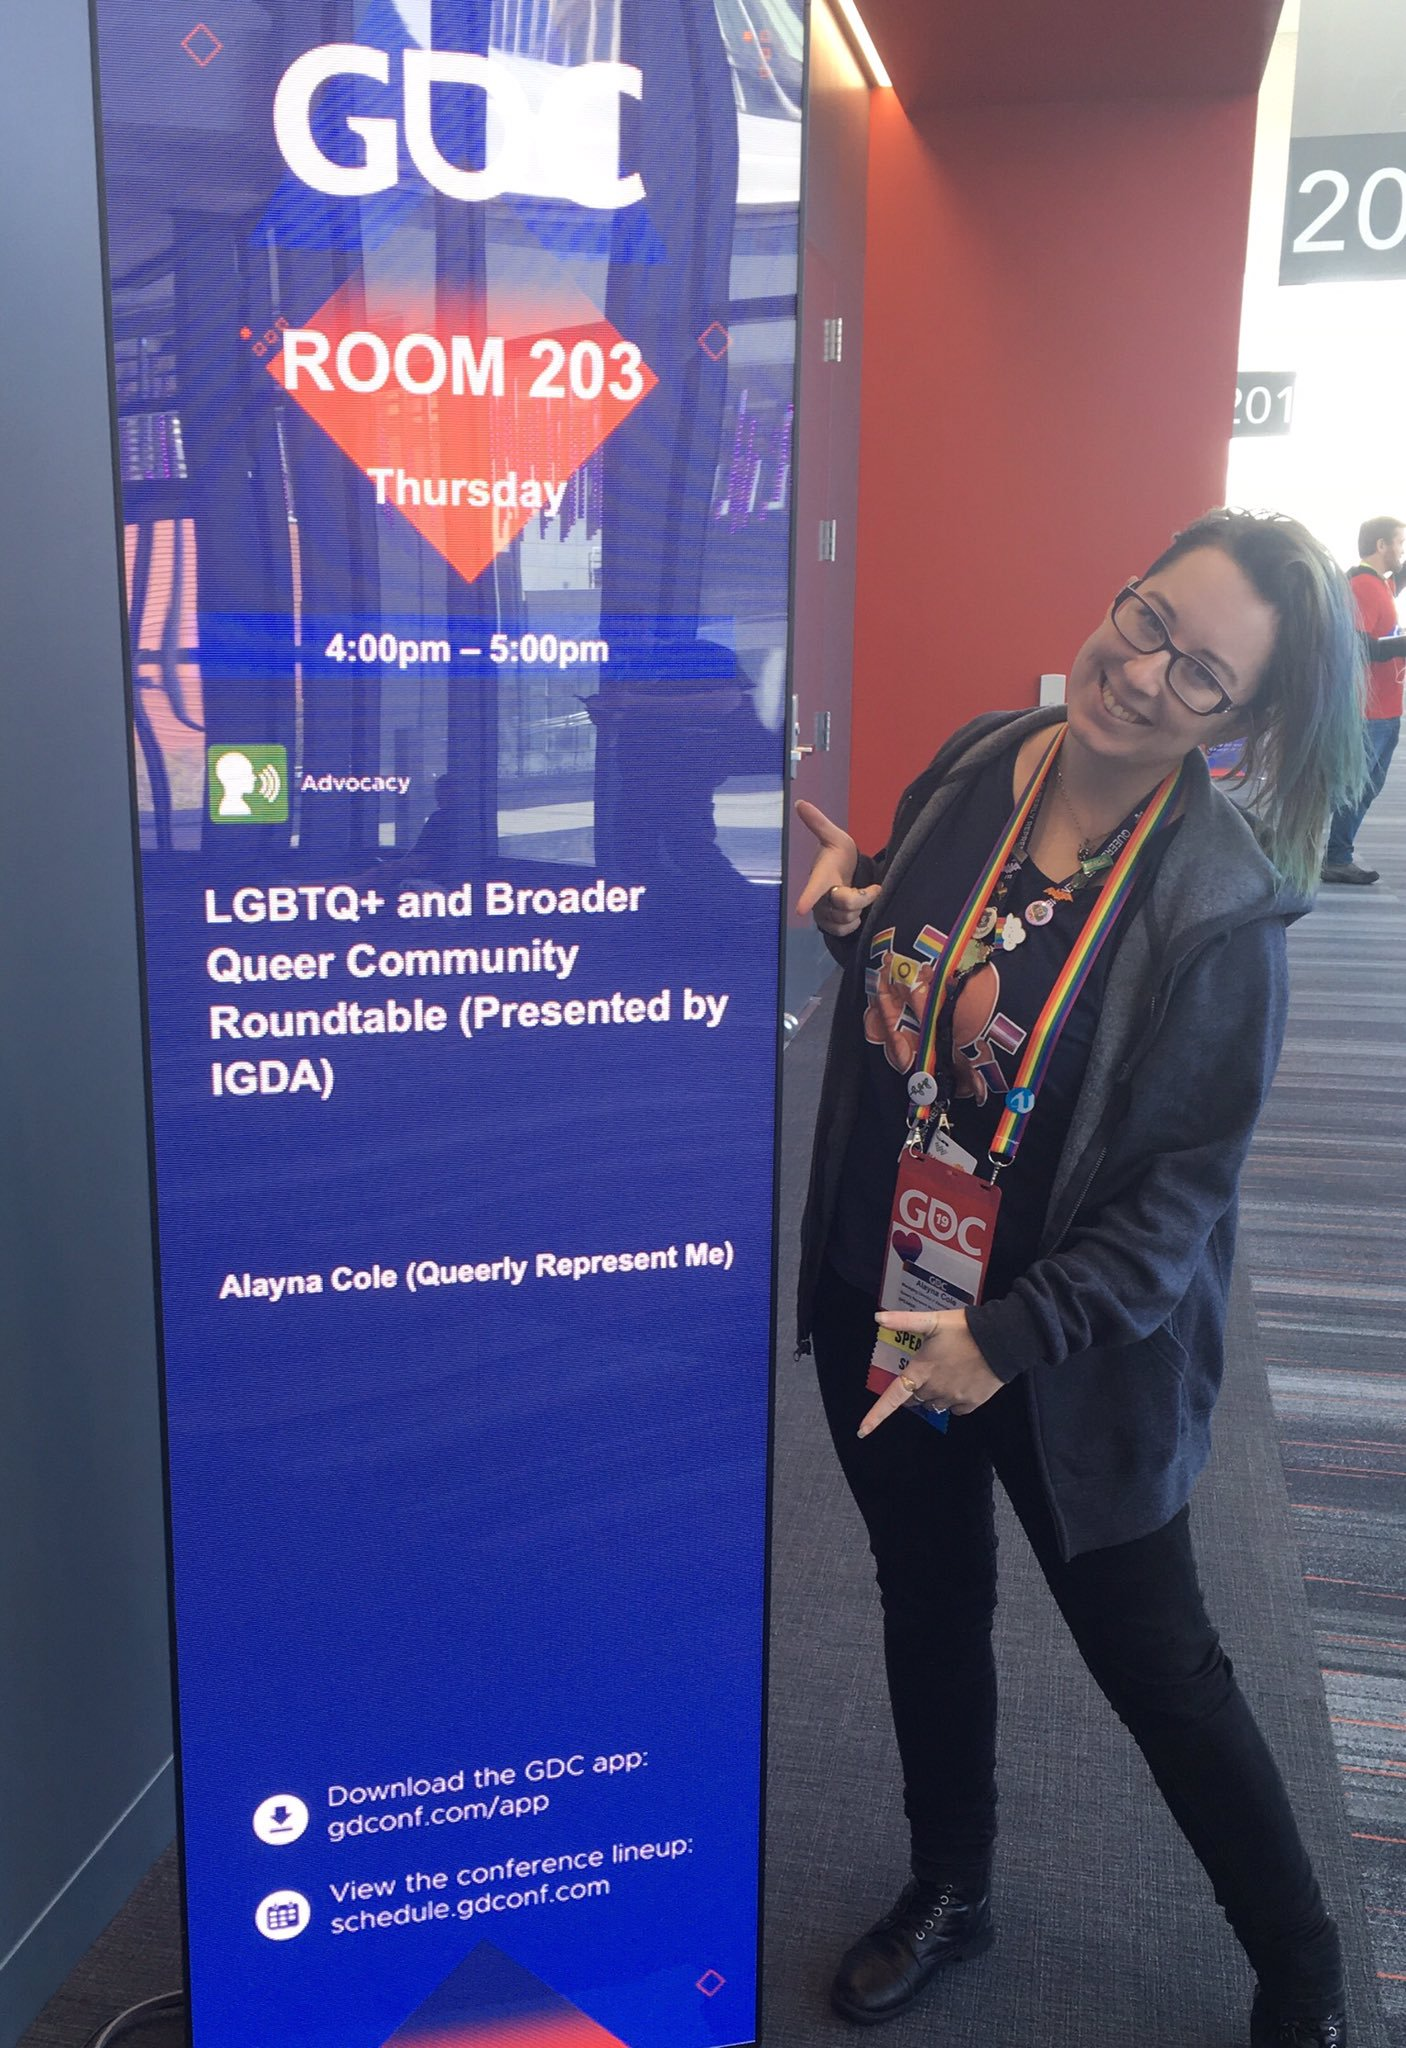 Photo of Alayna Cole next to sign announcing the GDC 2019 roundtable